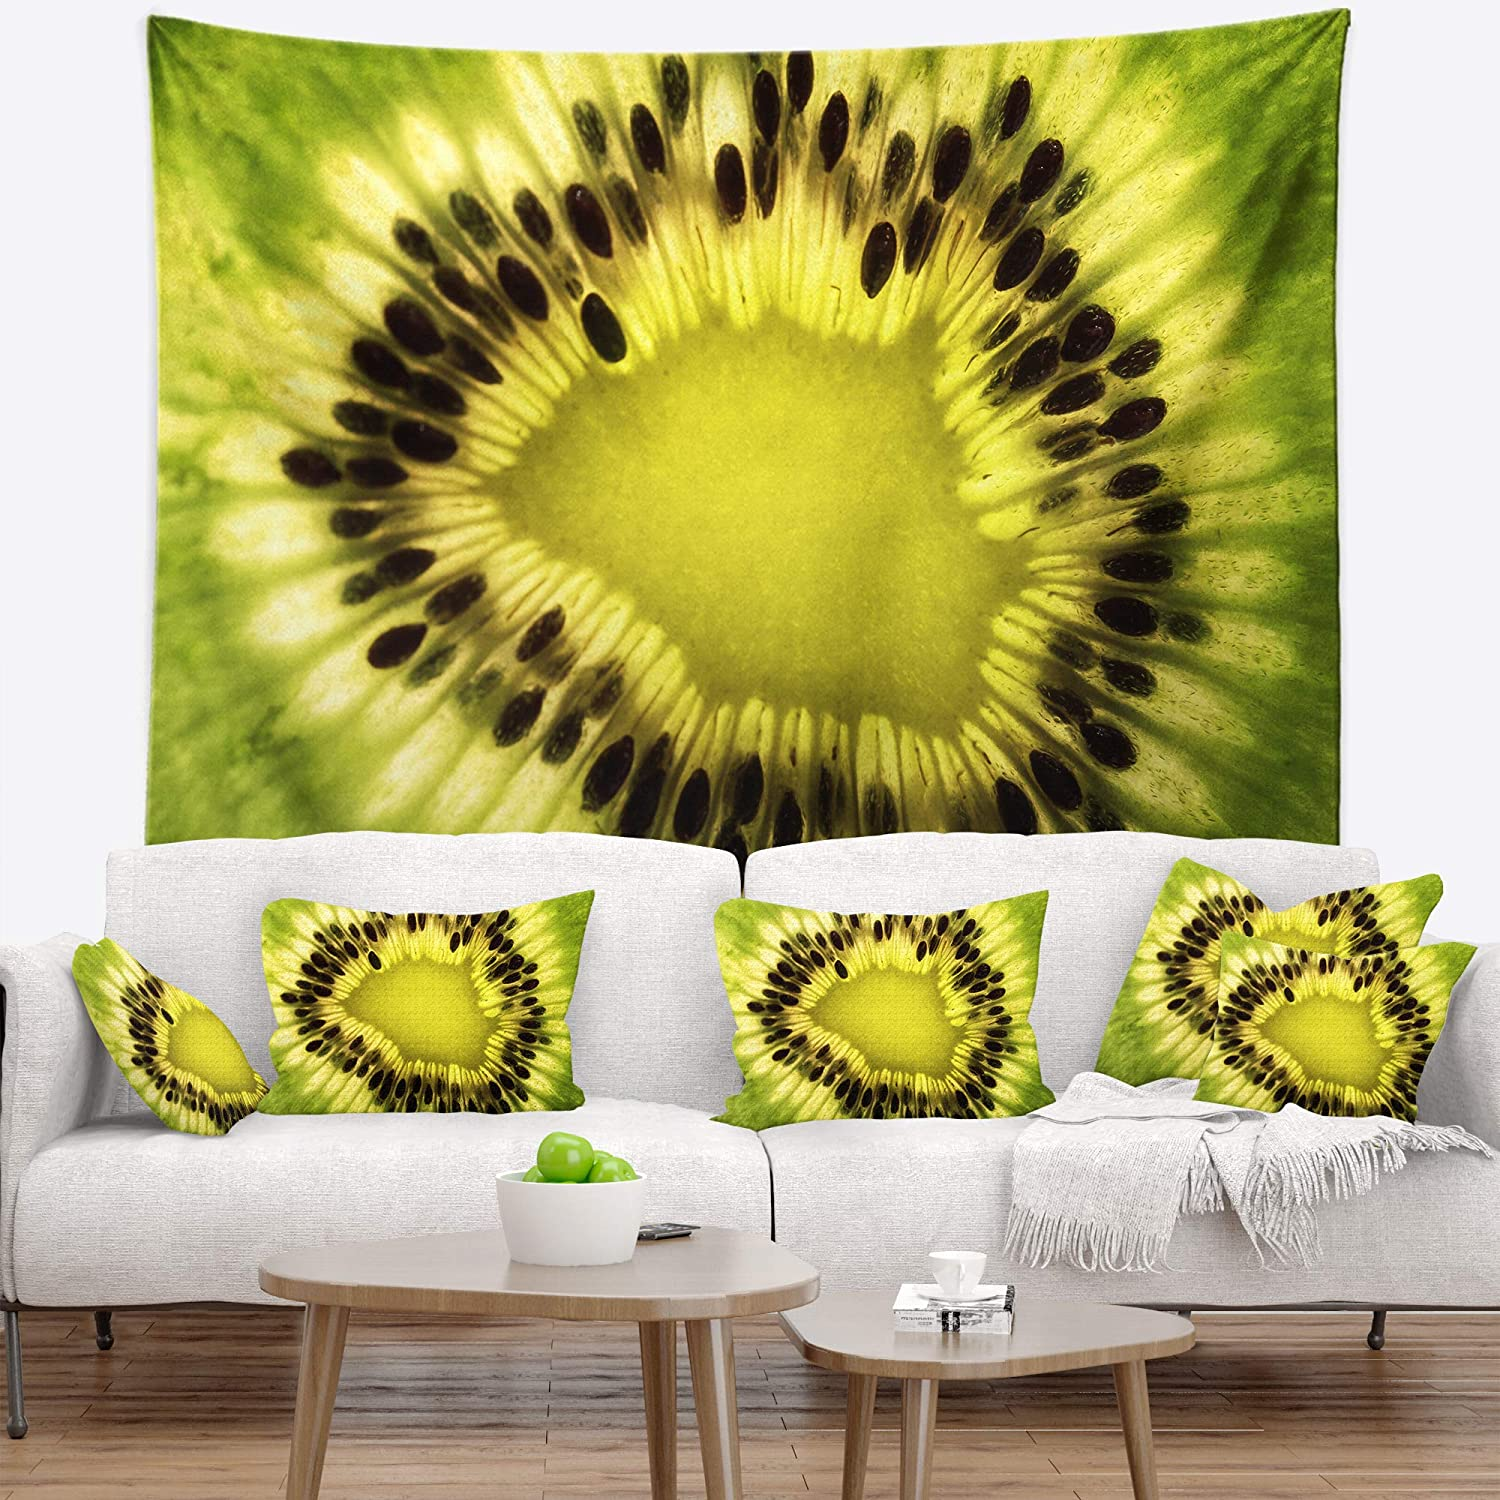 Created on Lightweight Polyester Fabric Designart TAP14691-80-68 Green Kiwi Seeds and Inside Pattern Contemporary Tapestry Blanket D/écor Wall Art for Home and Office x Large: 80 in x 68 in